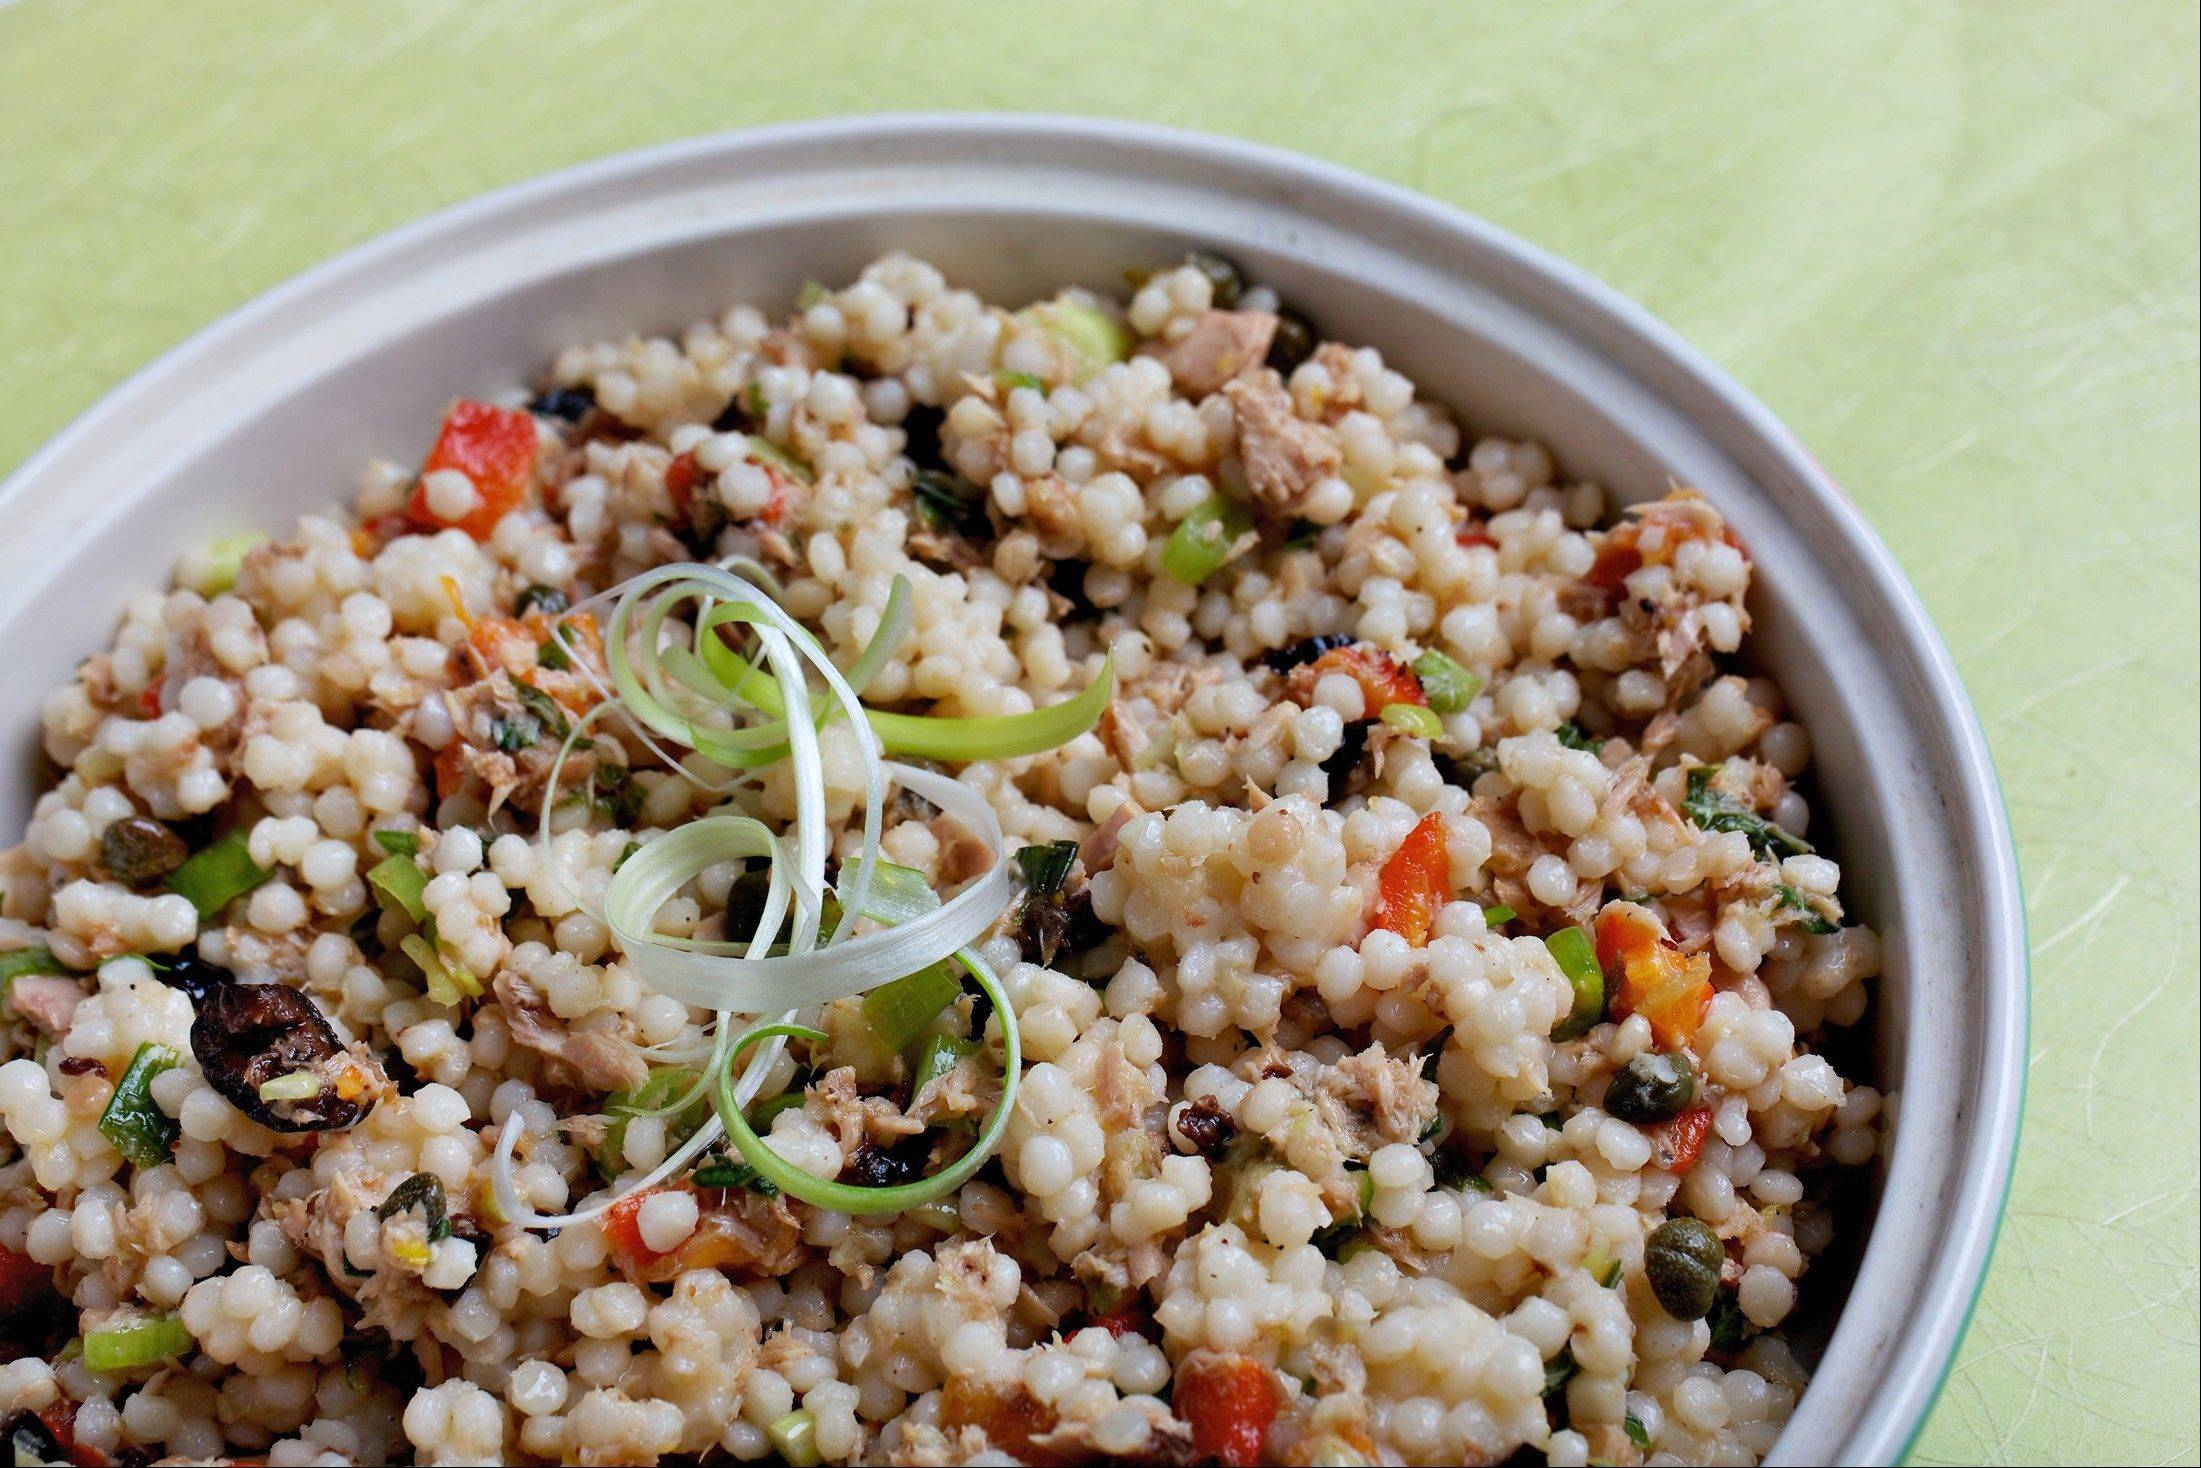 Israeli Couscous and Tuna Salad from Ina Gartne's Barfoot Contessa Foolproof""